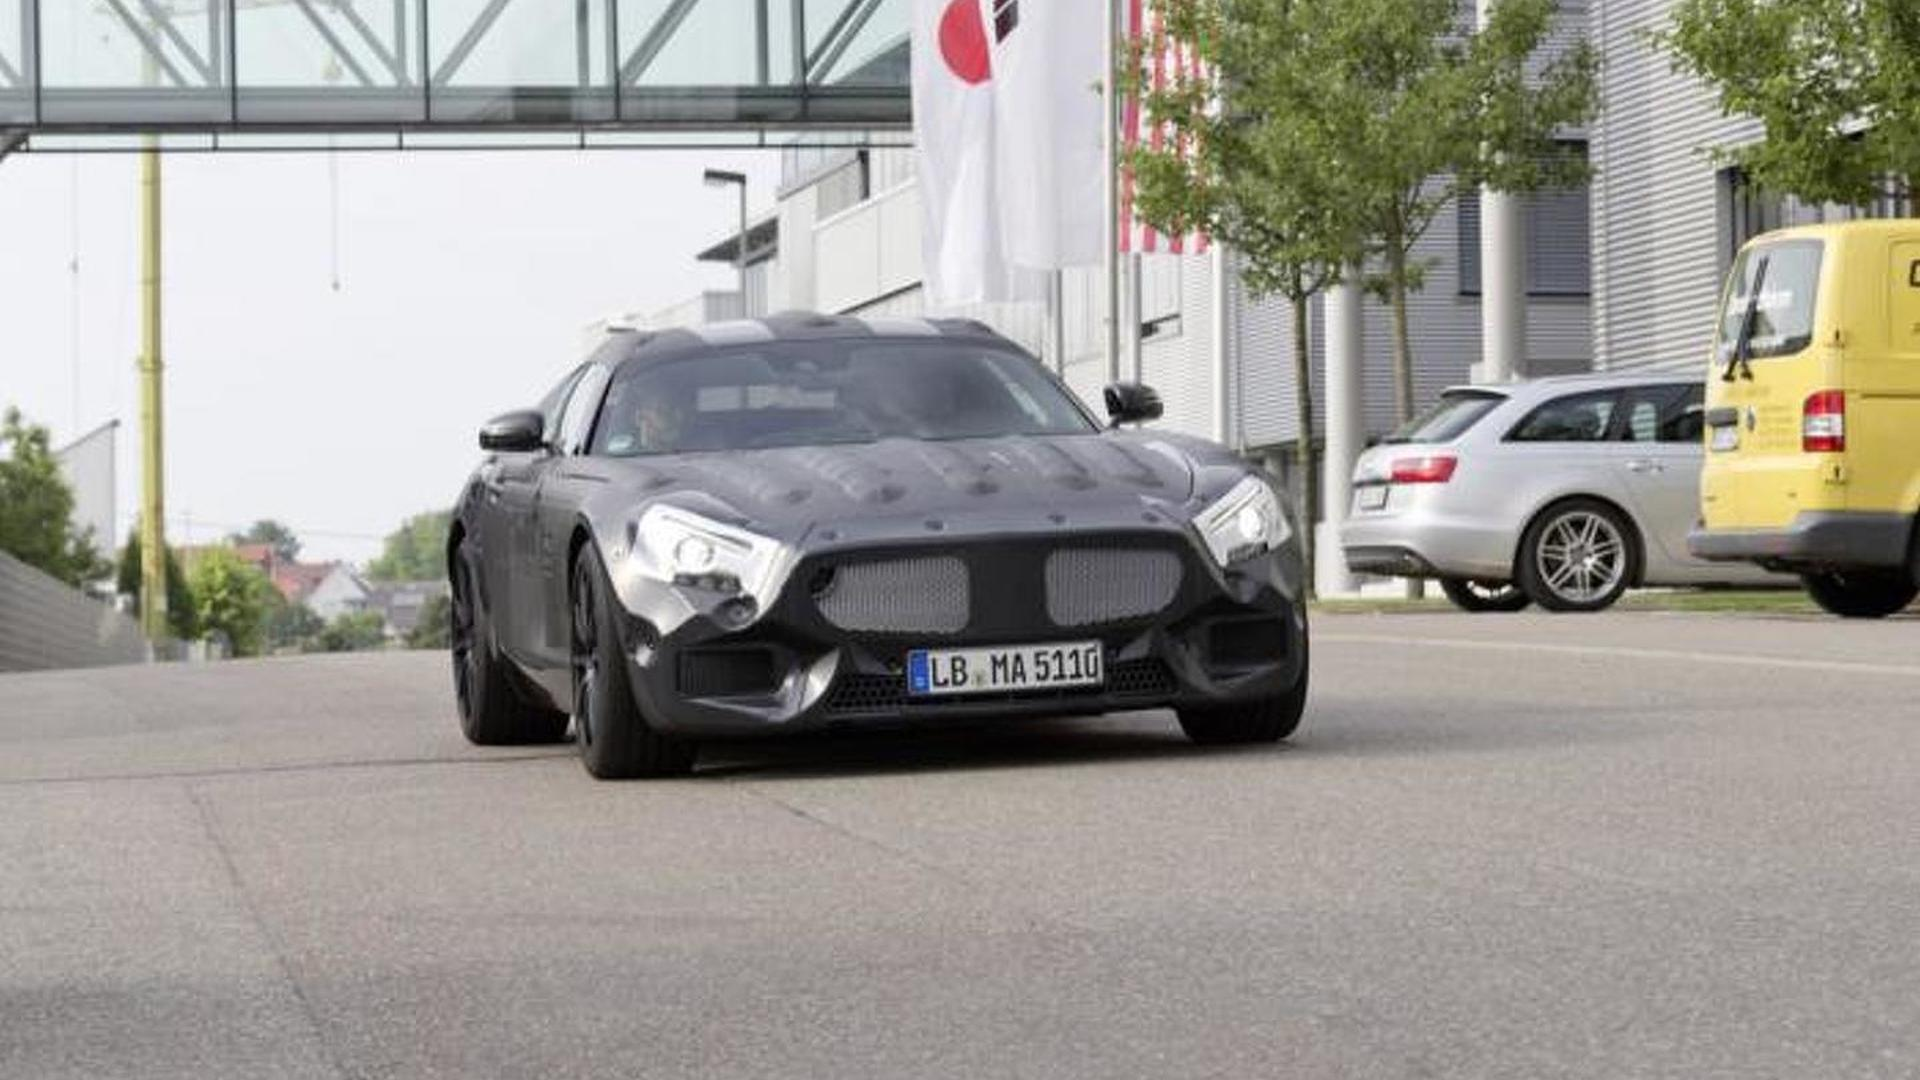 Mercedes SLS AMG successor teased in semi-official spy photos